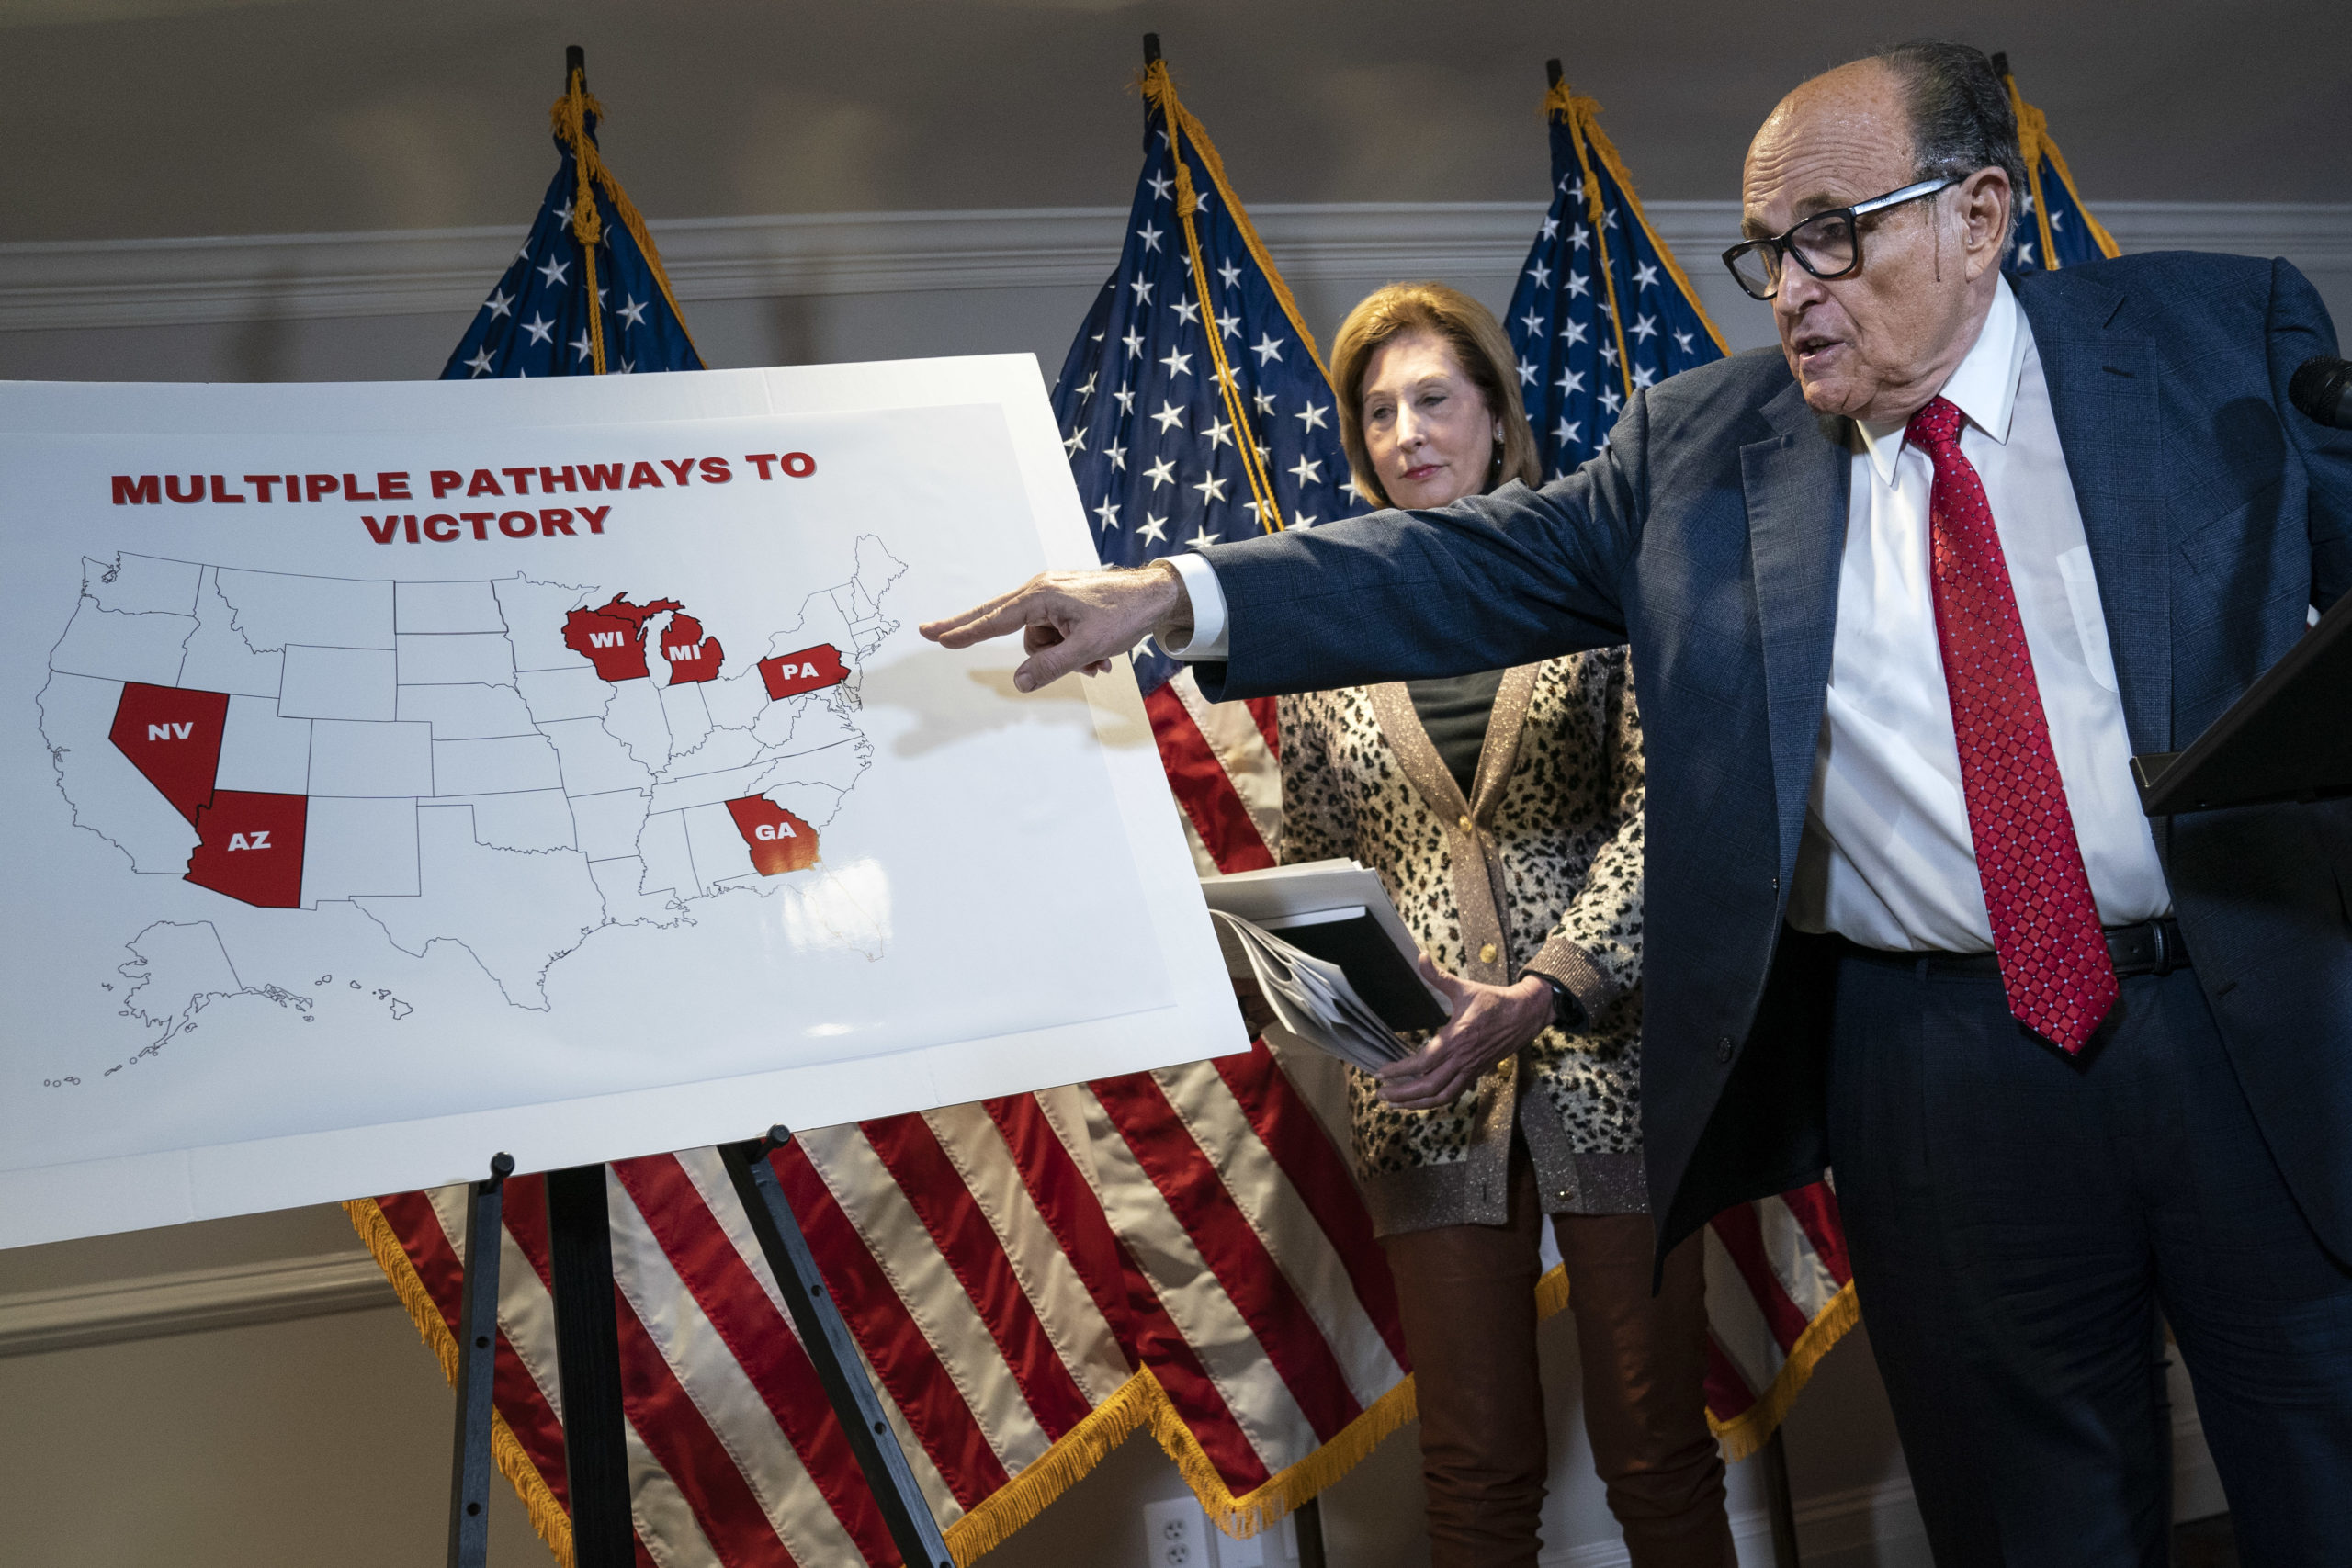 Alongside Sidney Powell, Rudy Giuliani points to a map as he speaks to the press about various lawsuits related to the 2020 election. (Drew Angerer/Getty Images)